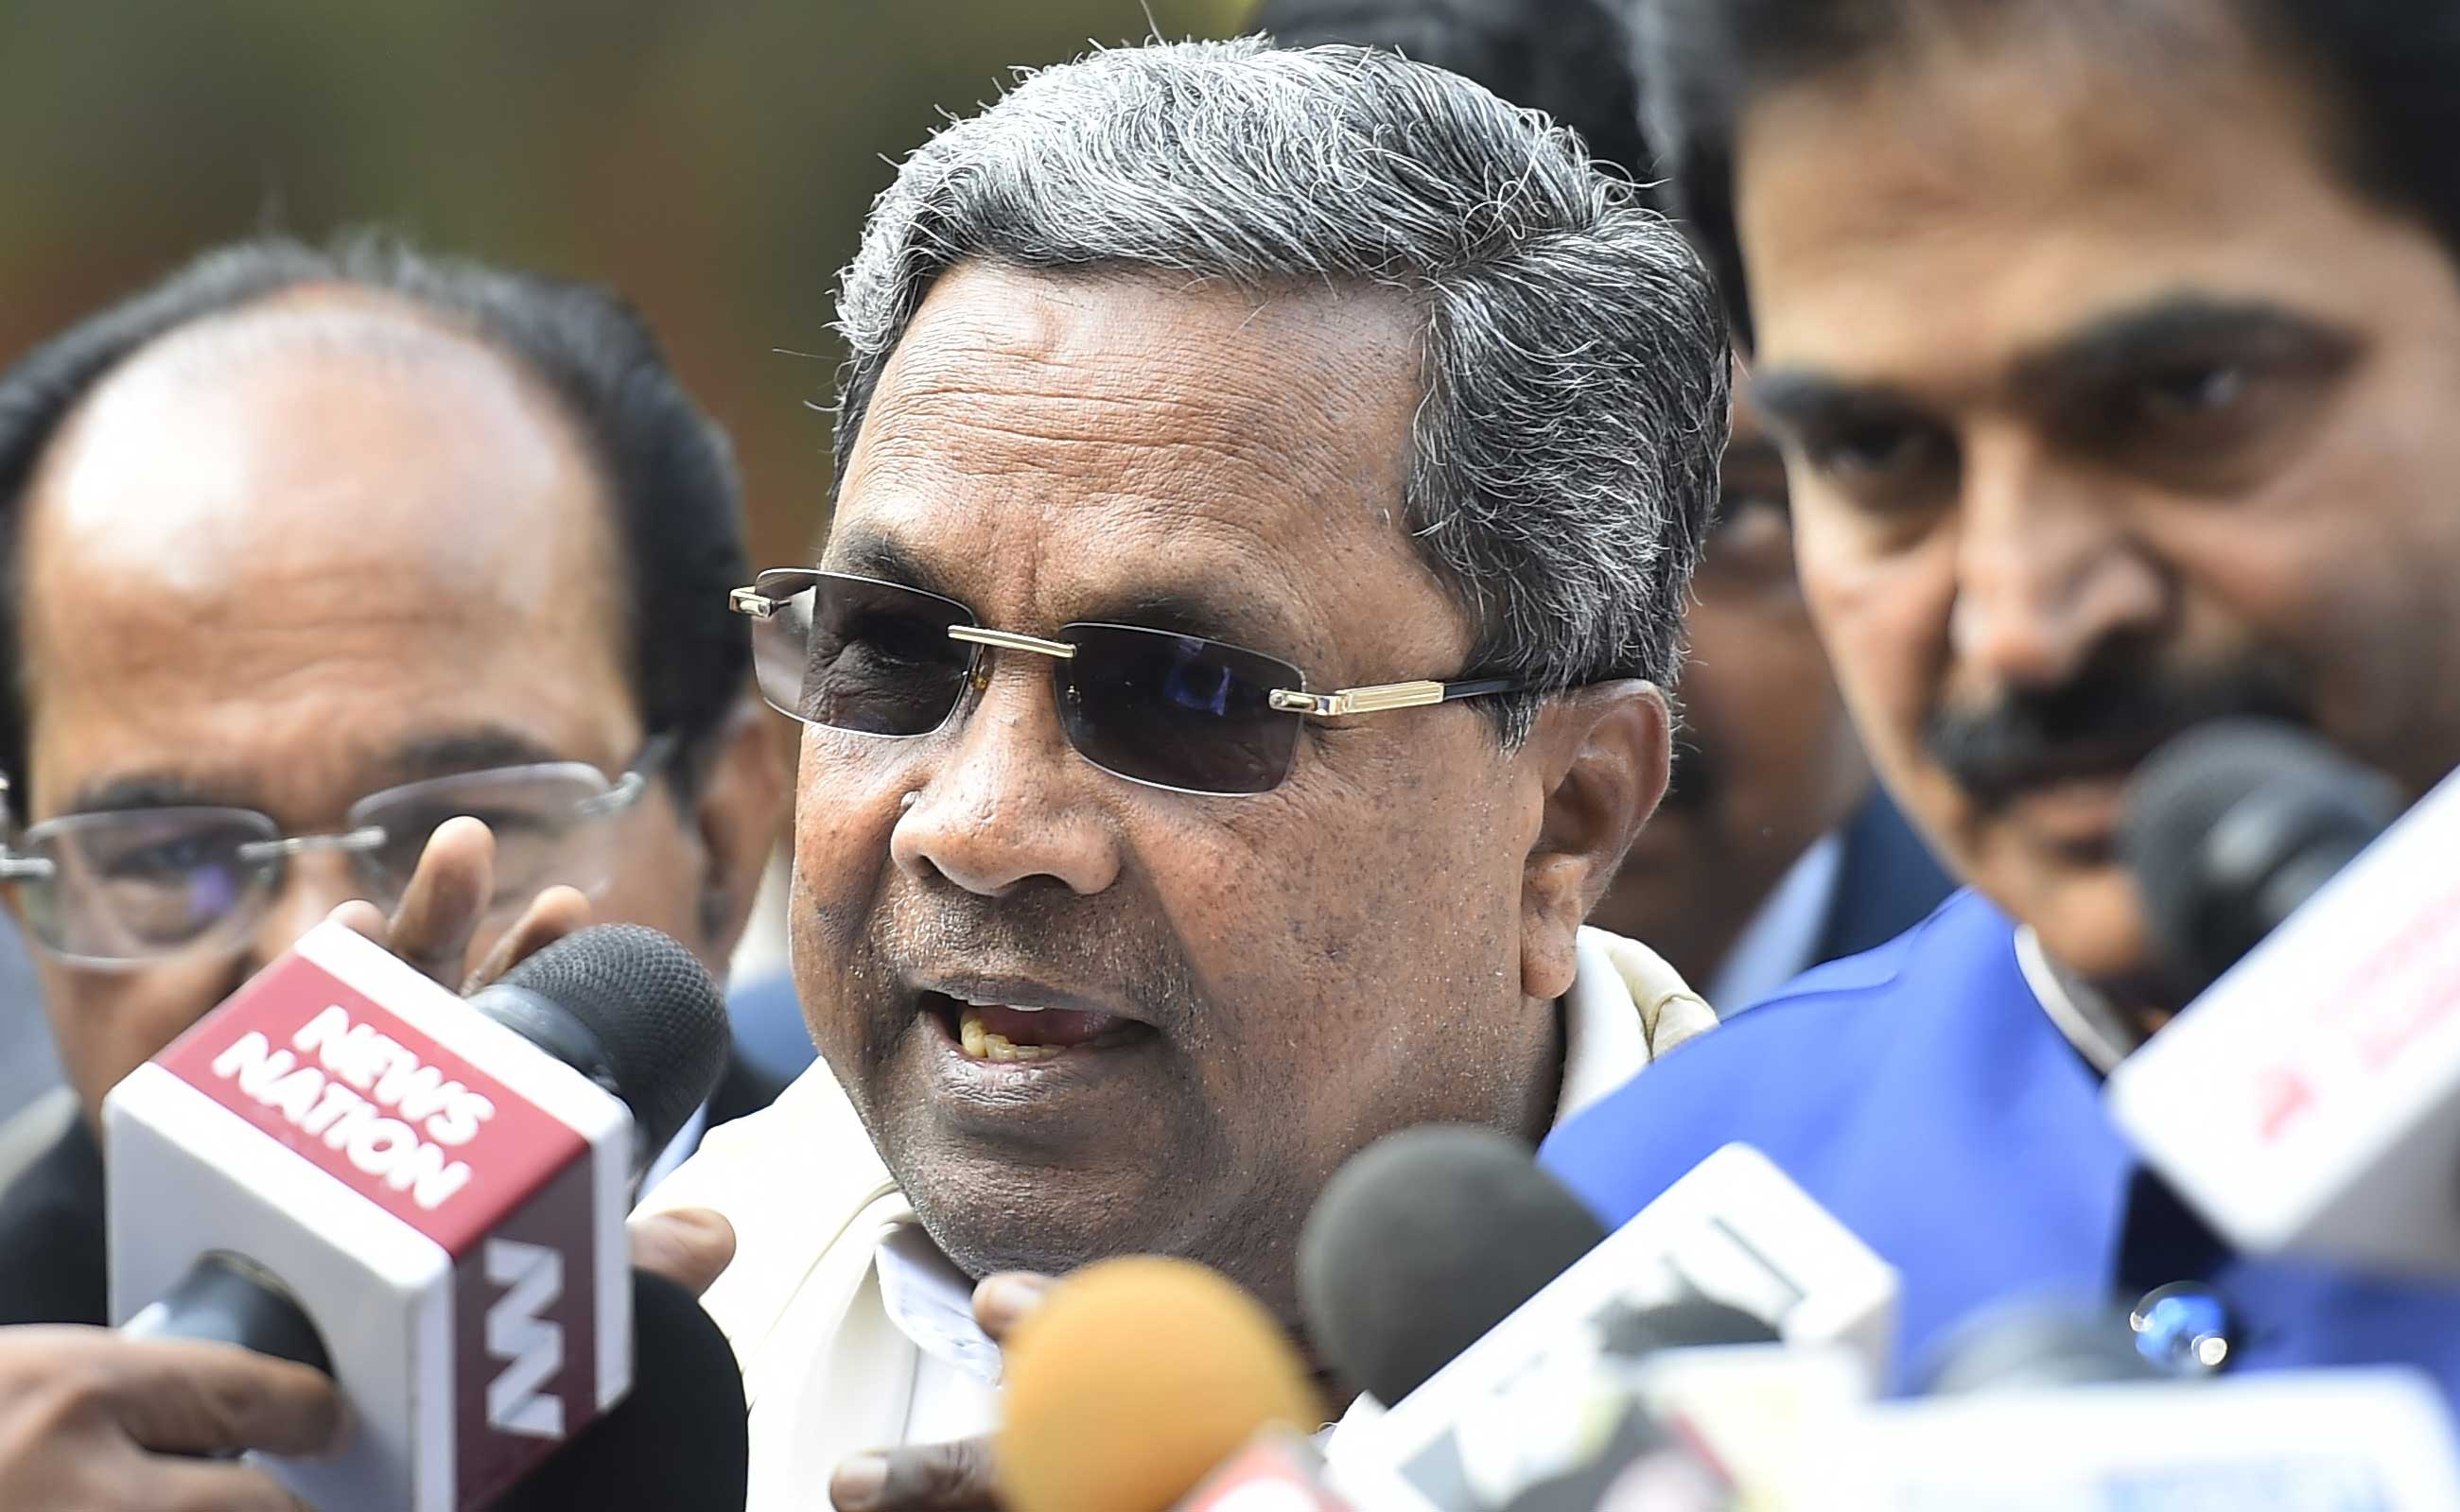 Former Karnataka chief minister Siddaramaiah had earlier said that there was no internal understanding between the Congress and the JD(S) during the bypolls and both parties were seriously fighting against each other.